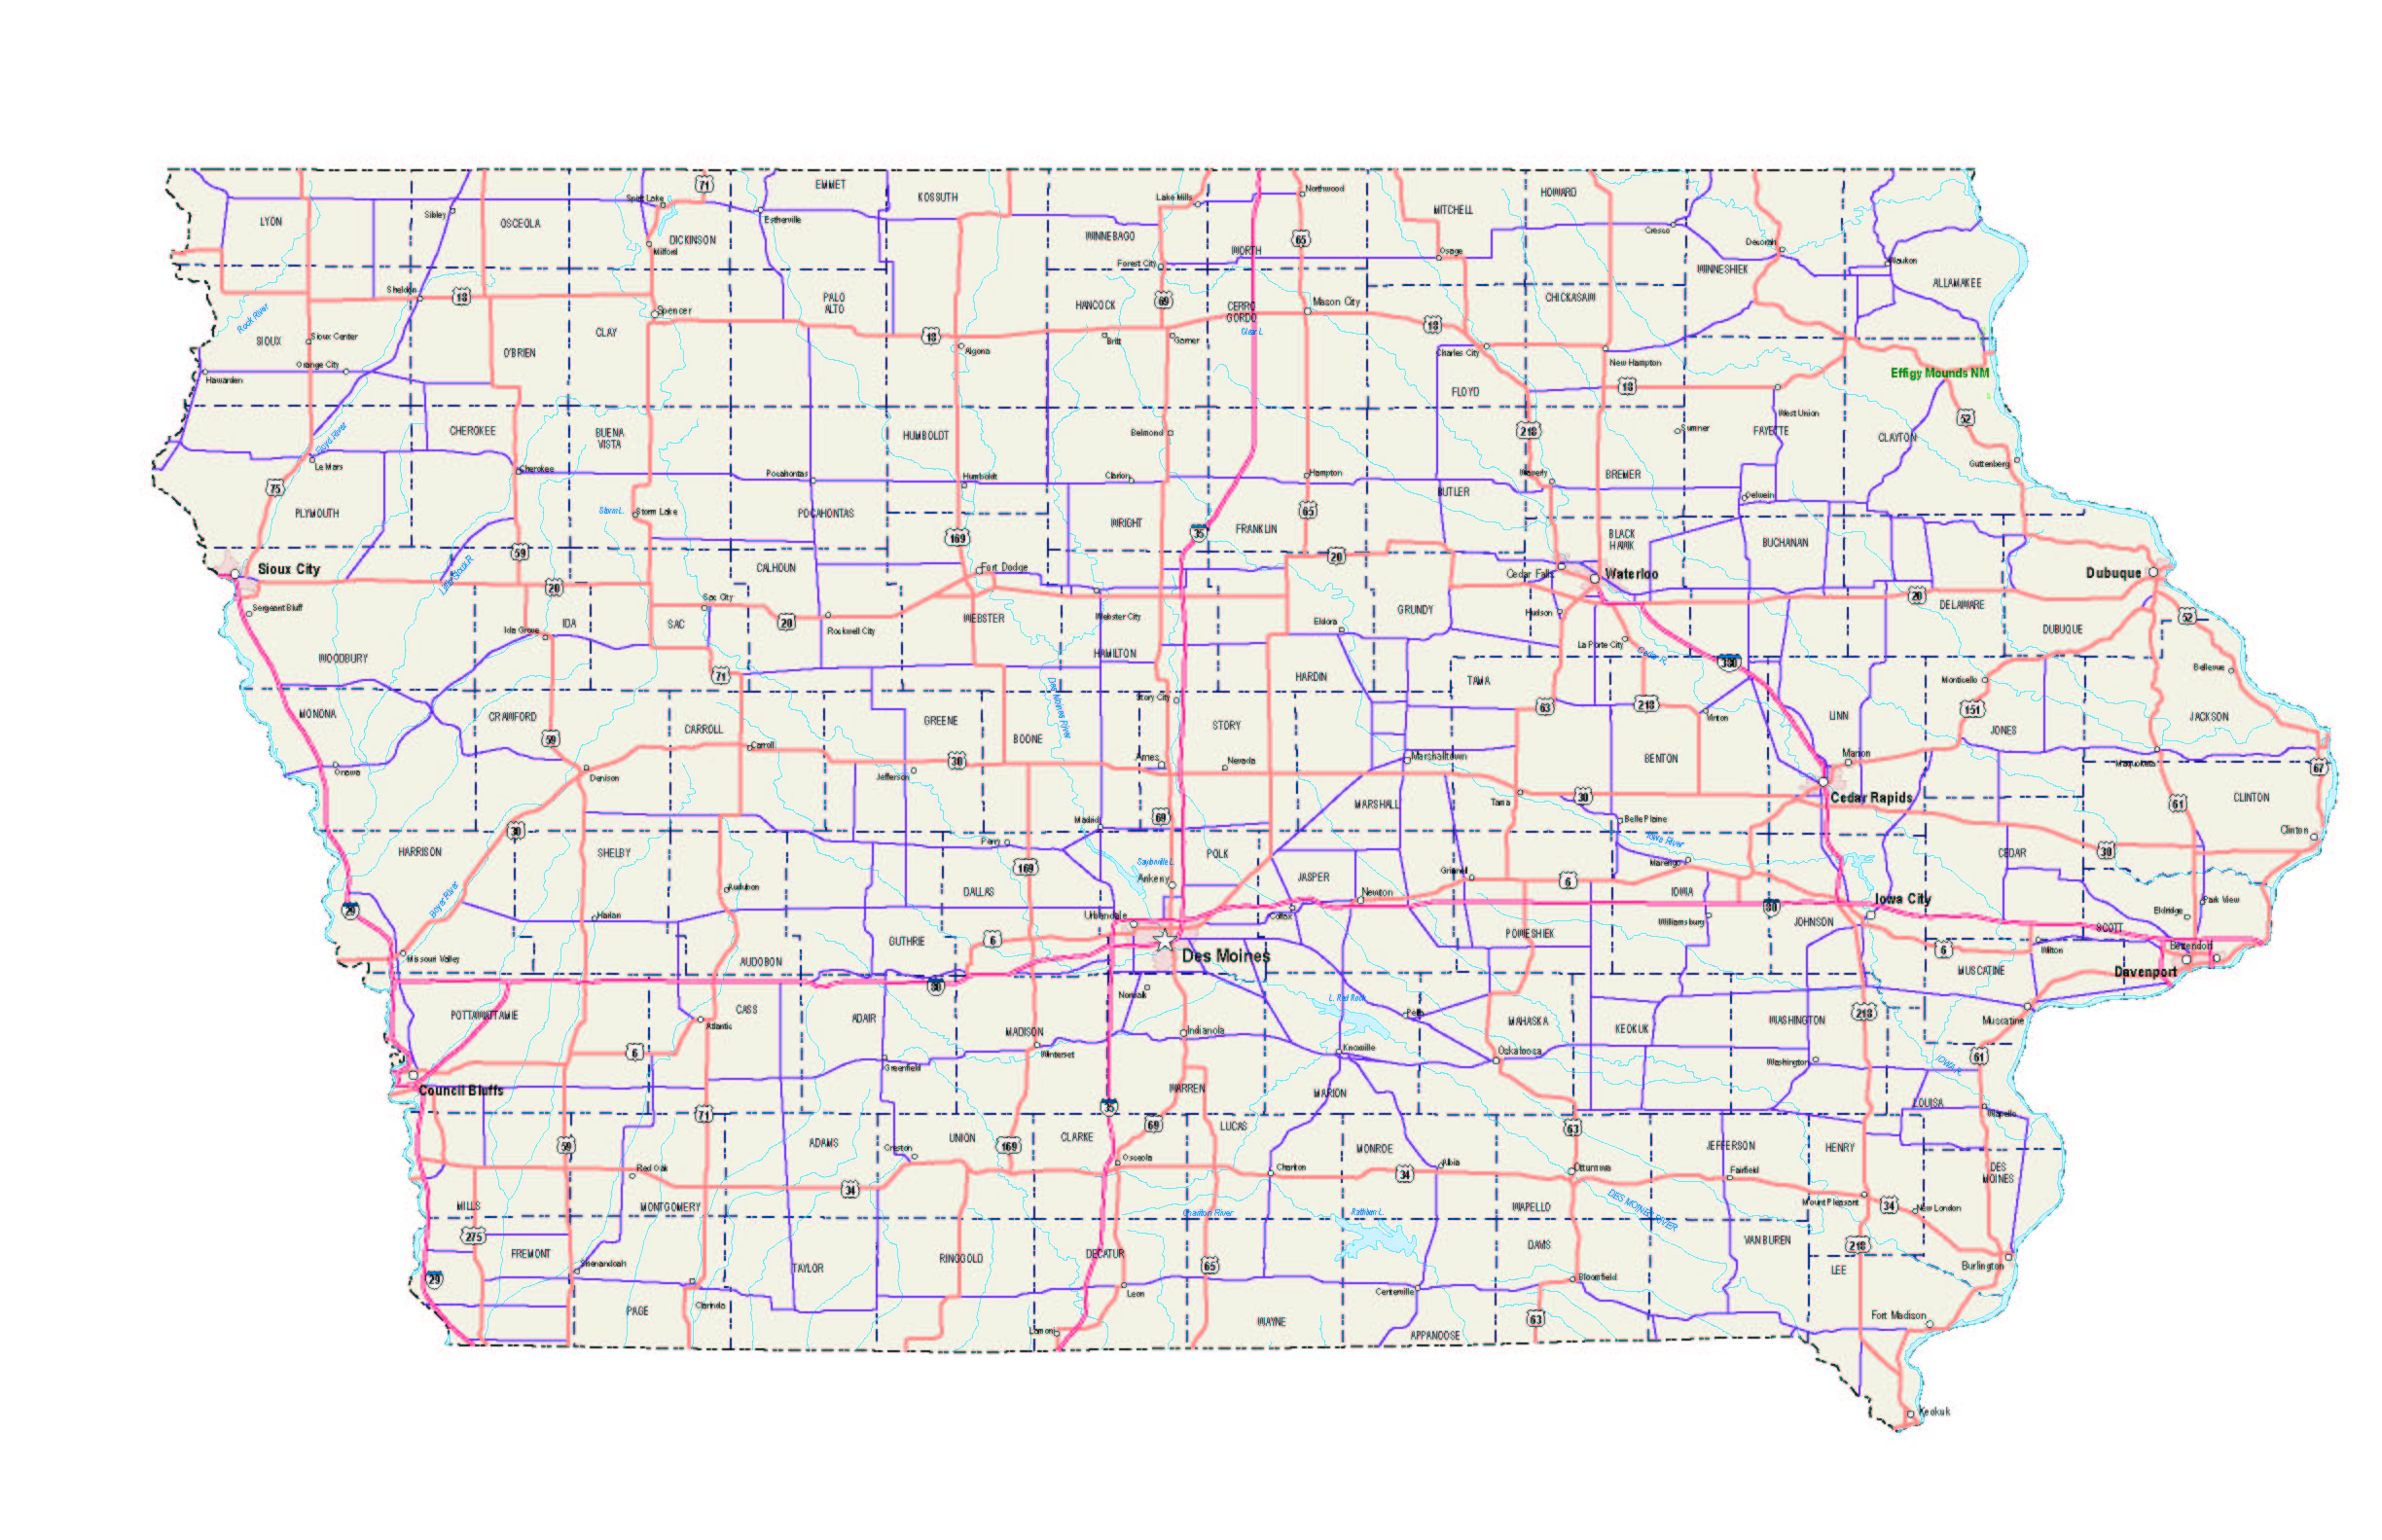 Iowa Maps Iowa Map Iowa Road Map Iowa State Map - Road map of iowa